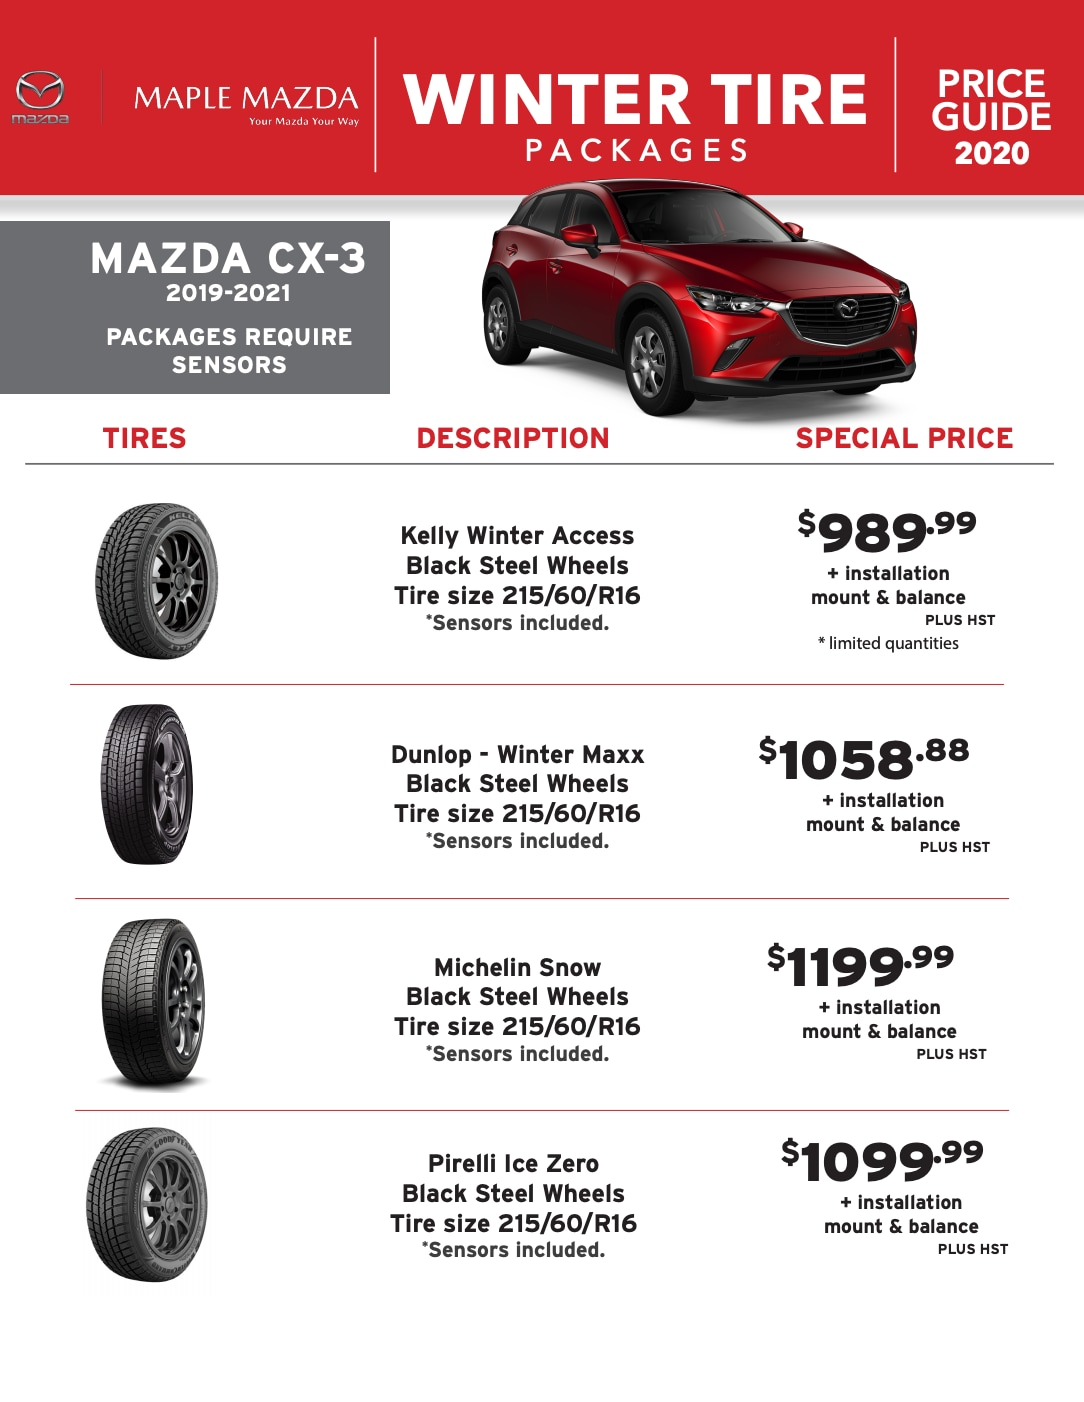 Winter Tire Packages in Maple, Ontario - MAZDA CX-3